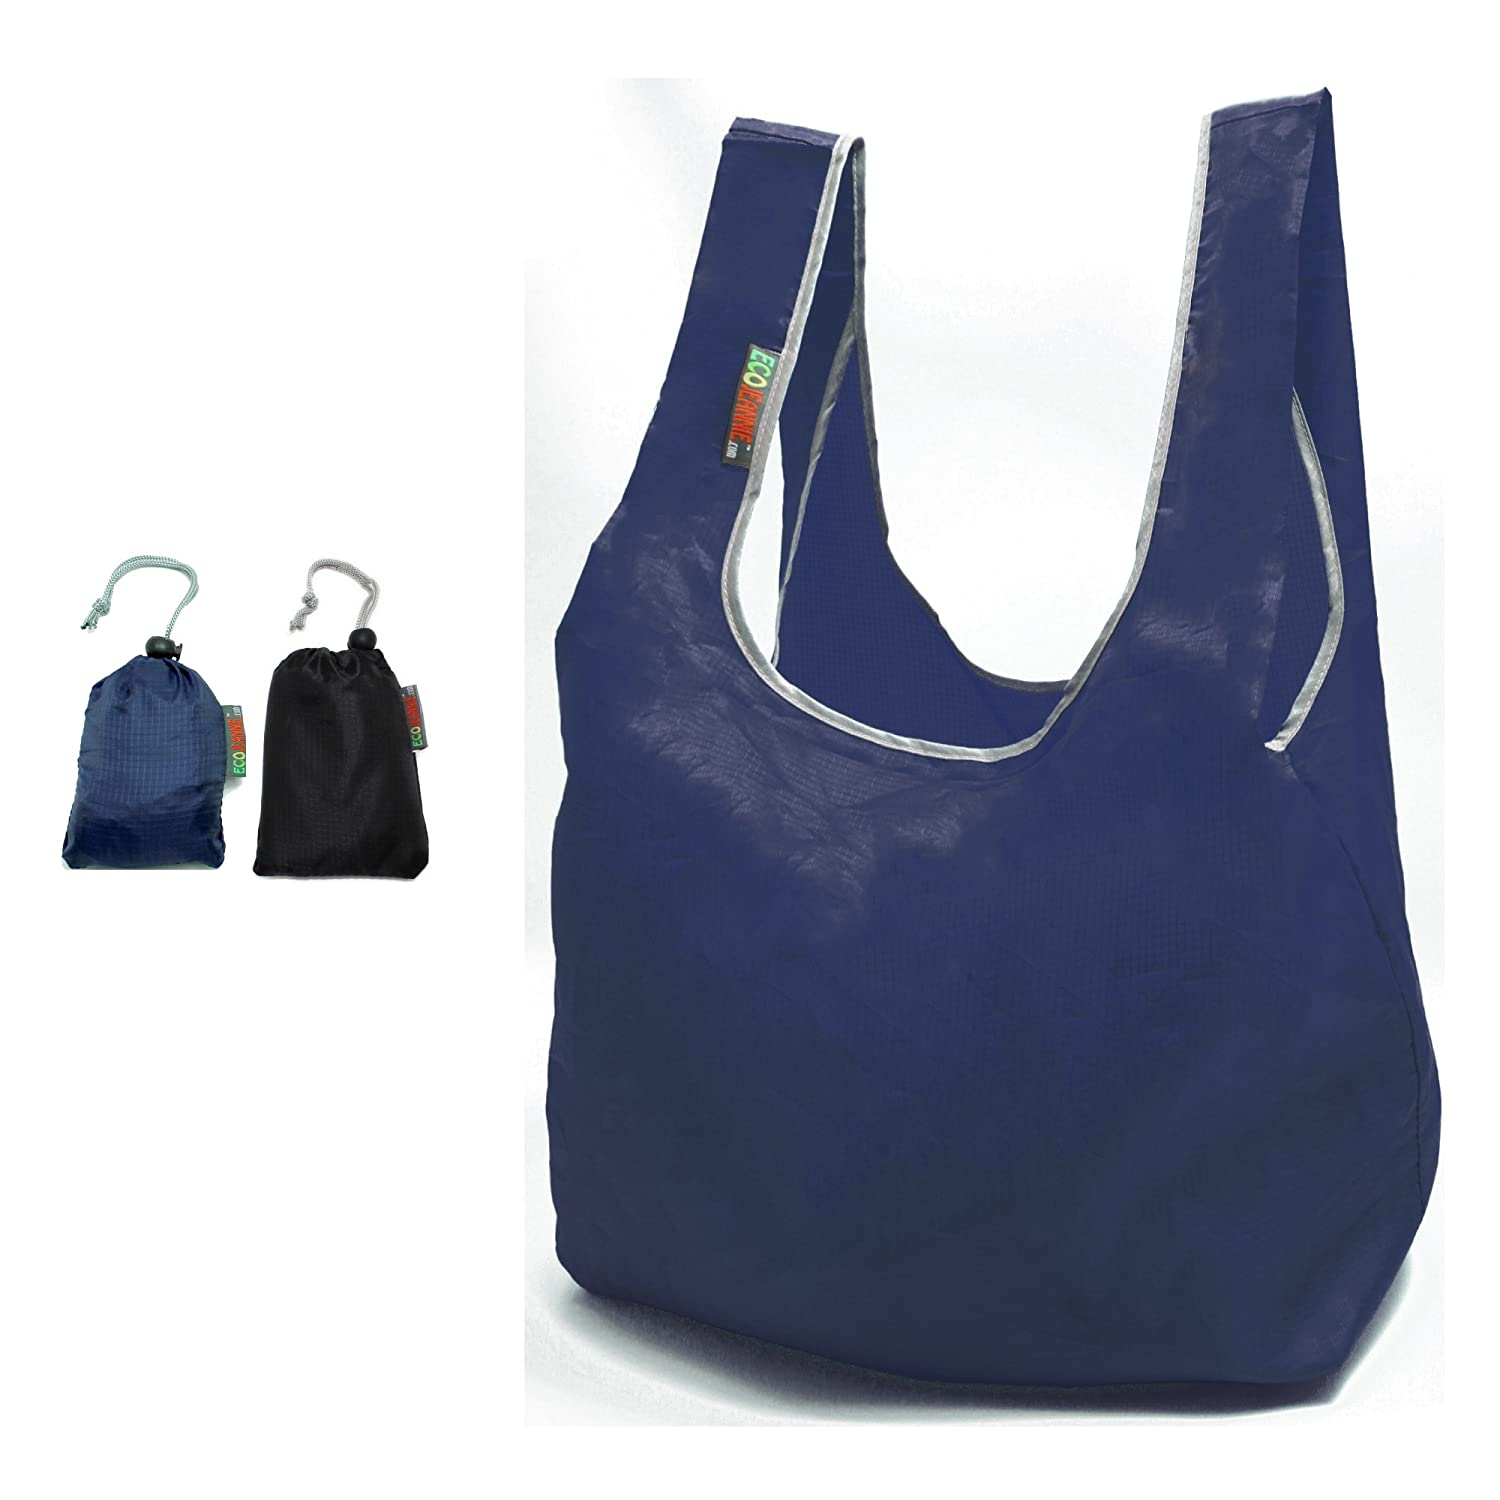 【30%OFF】 Ecojeannie 2 Pack Super Strongリップストップナイロン折りたたみ式再利用可能なバッグGrocery Shopping Tote Navy, Bag 9 Black with組み込みポーチ 9 Wx5.5 L RBS208 B00VAIY4XA Navy, Black Navy, Black, Little Rain:8c2289a2 --- lazypandafilms.com